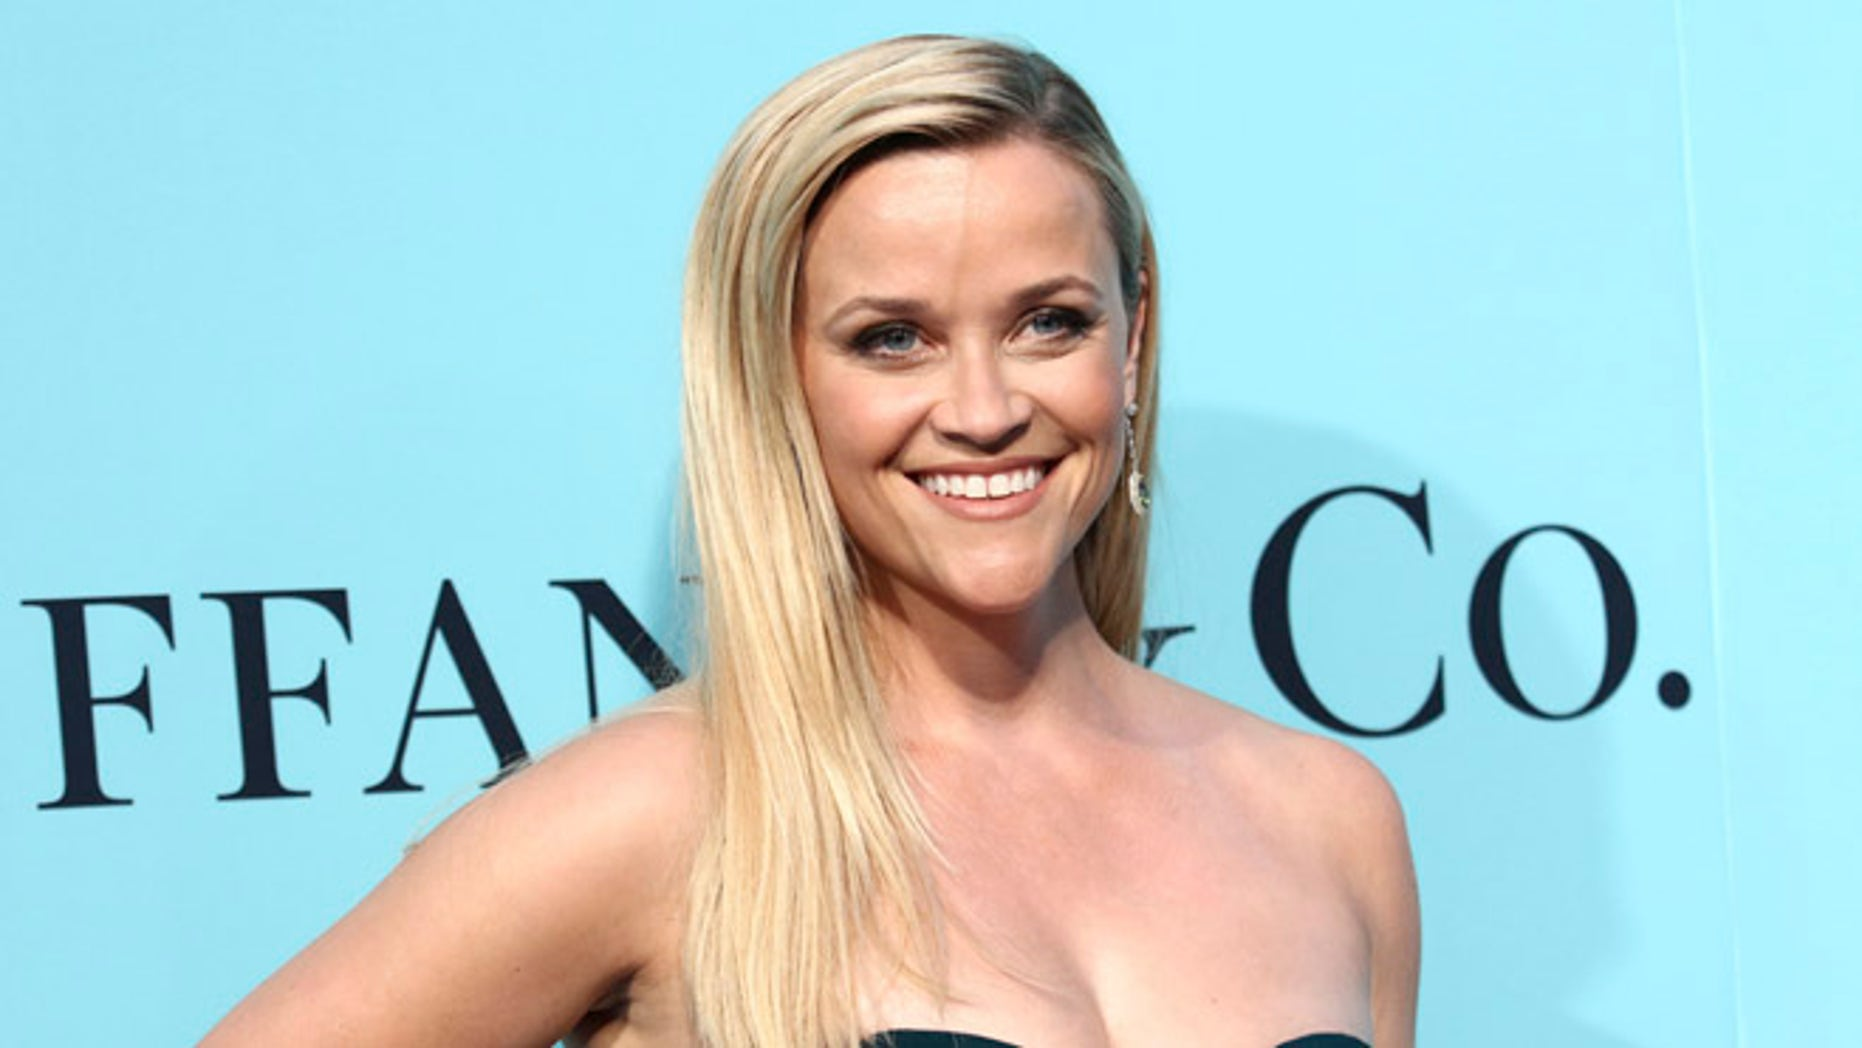 Reese Witherspoon attends Tiffany & Co. 2017 Blue Book Collection Celebration at St. Ann's Warehouse on Friday, April 21, 2017, in New York. (Photo by Greg Allen/Invision/AP)